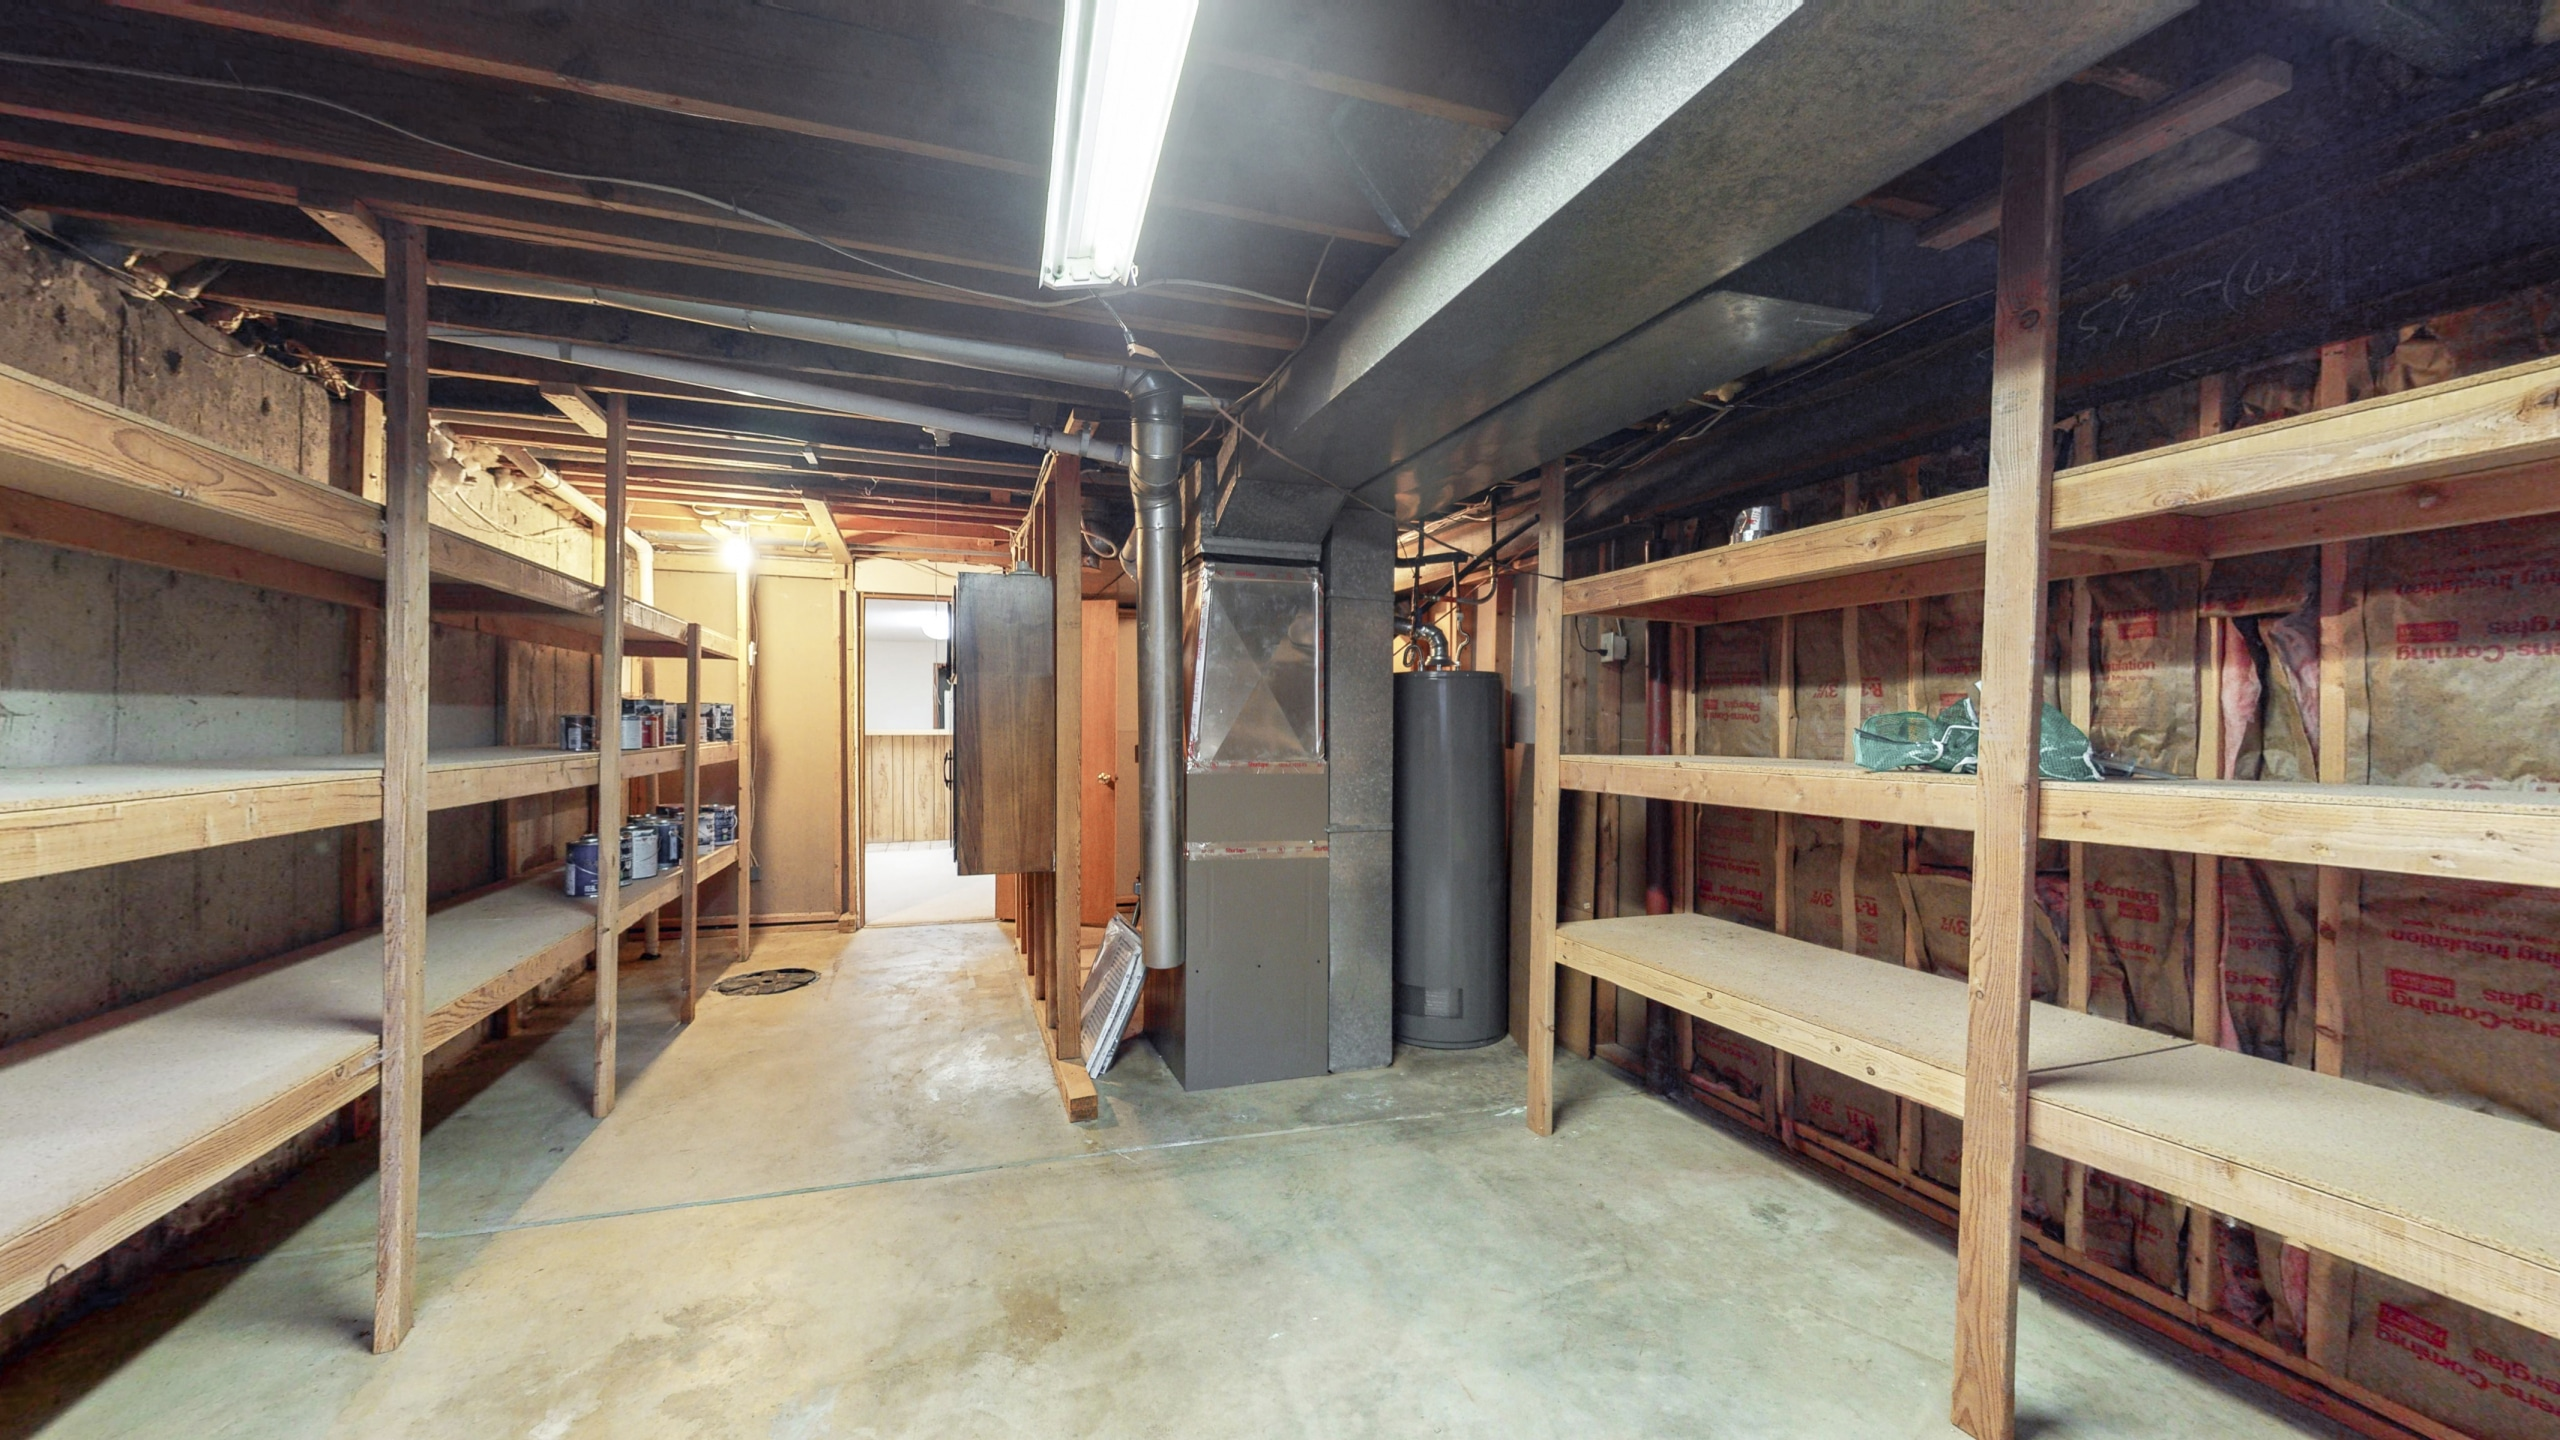 Brighton Home For Sale, built-in wood shelving in utility room